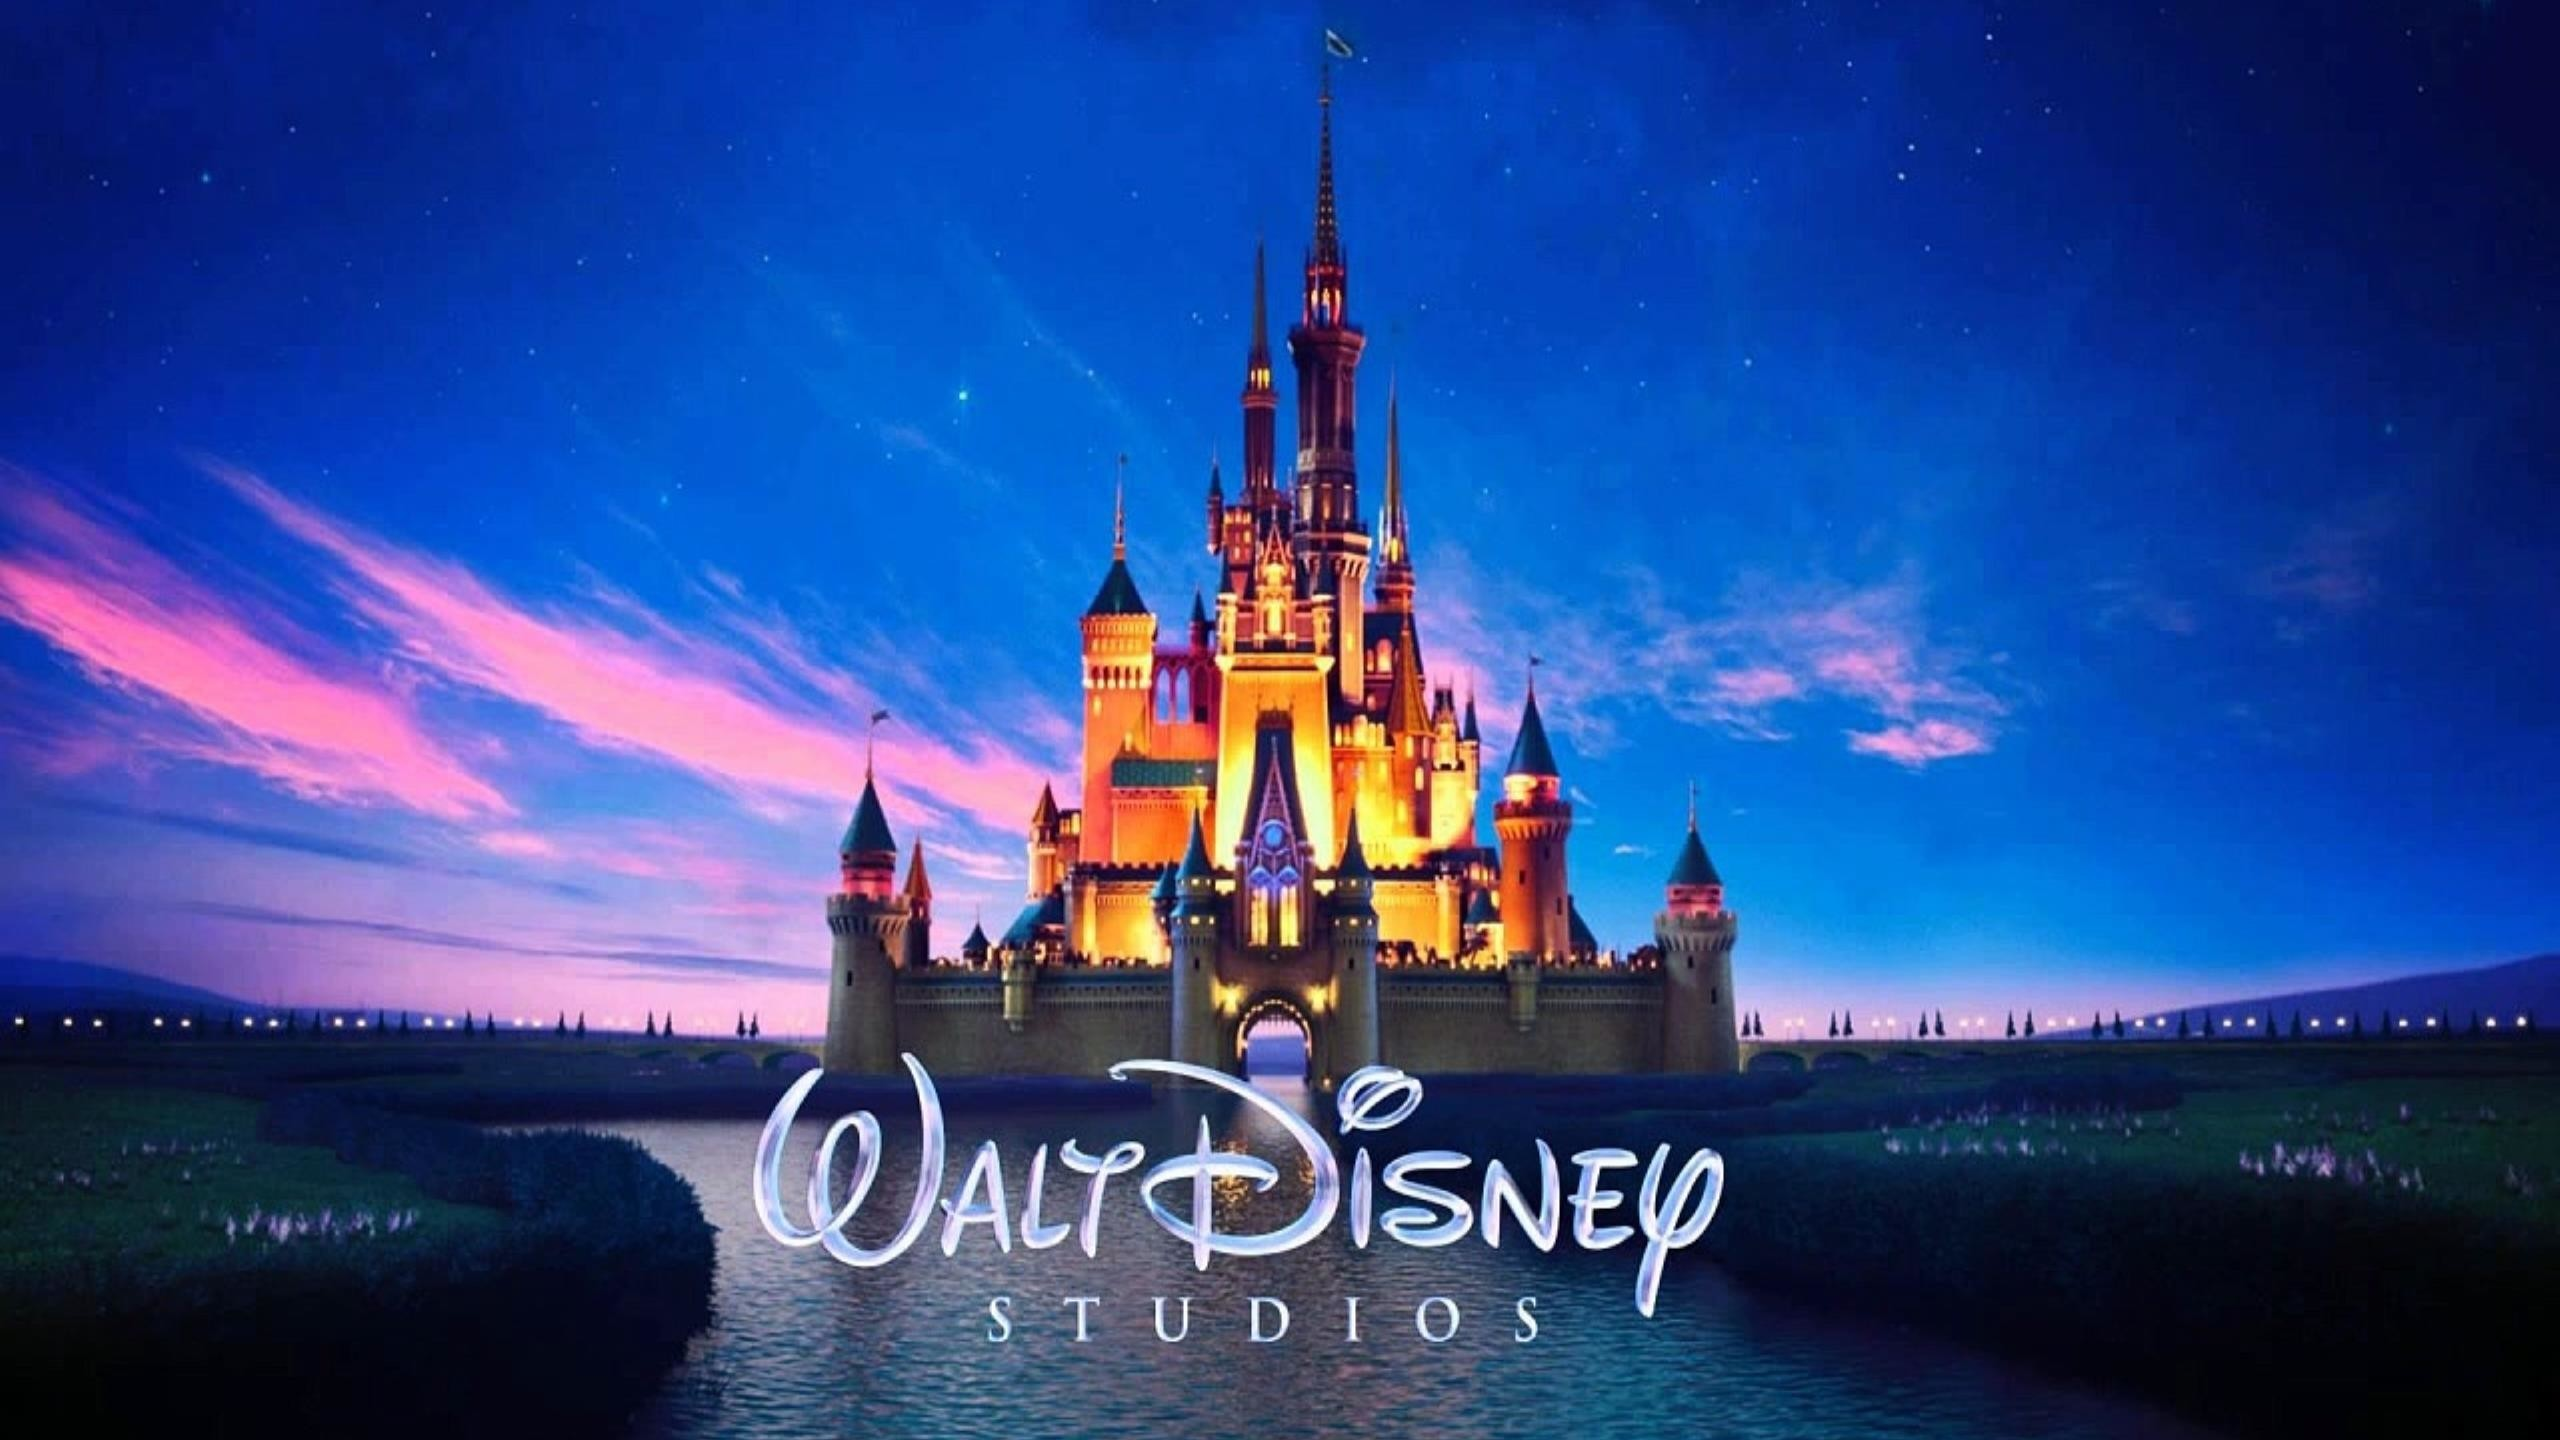 2560x1440 ... walt disney studios wallpaper hd wallpapers cartoon ...